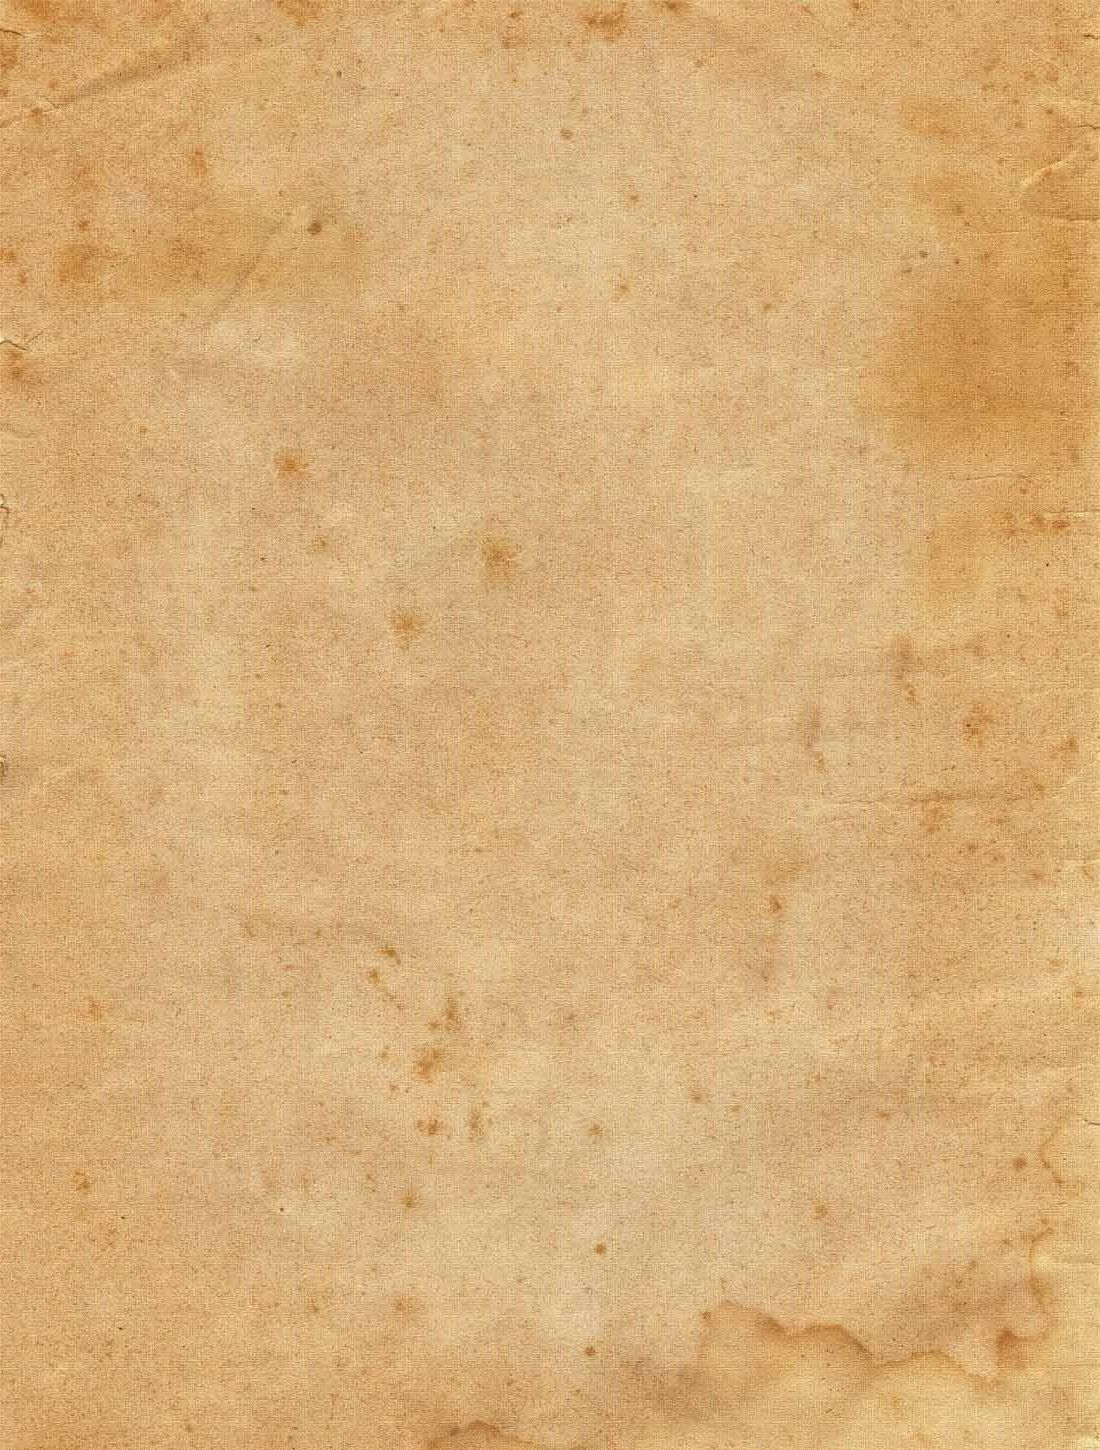 42 Newspaper Backgrounds On Wallpapersafari For Blank Old Newspaper Template Best Sample Template In 2020 Newspaper Background Newspaper Template Old Newspaper